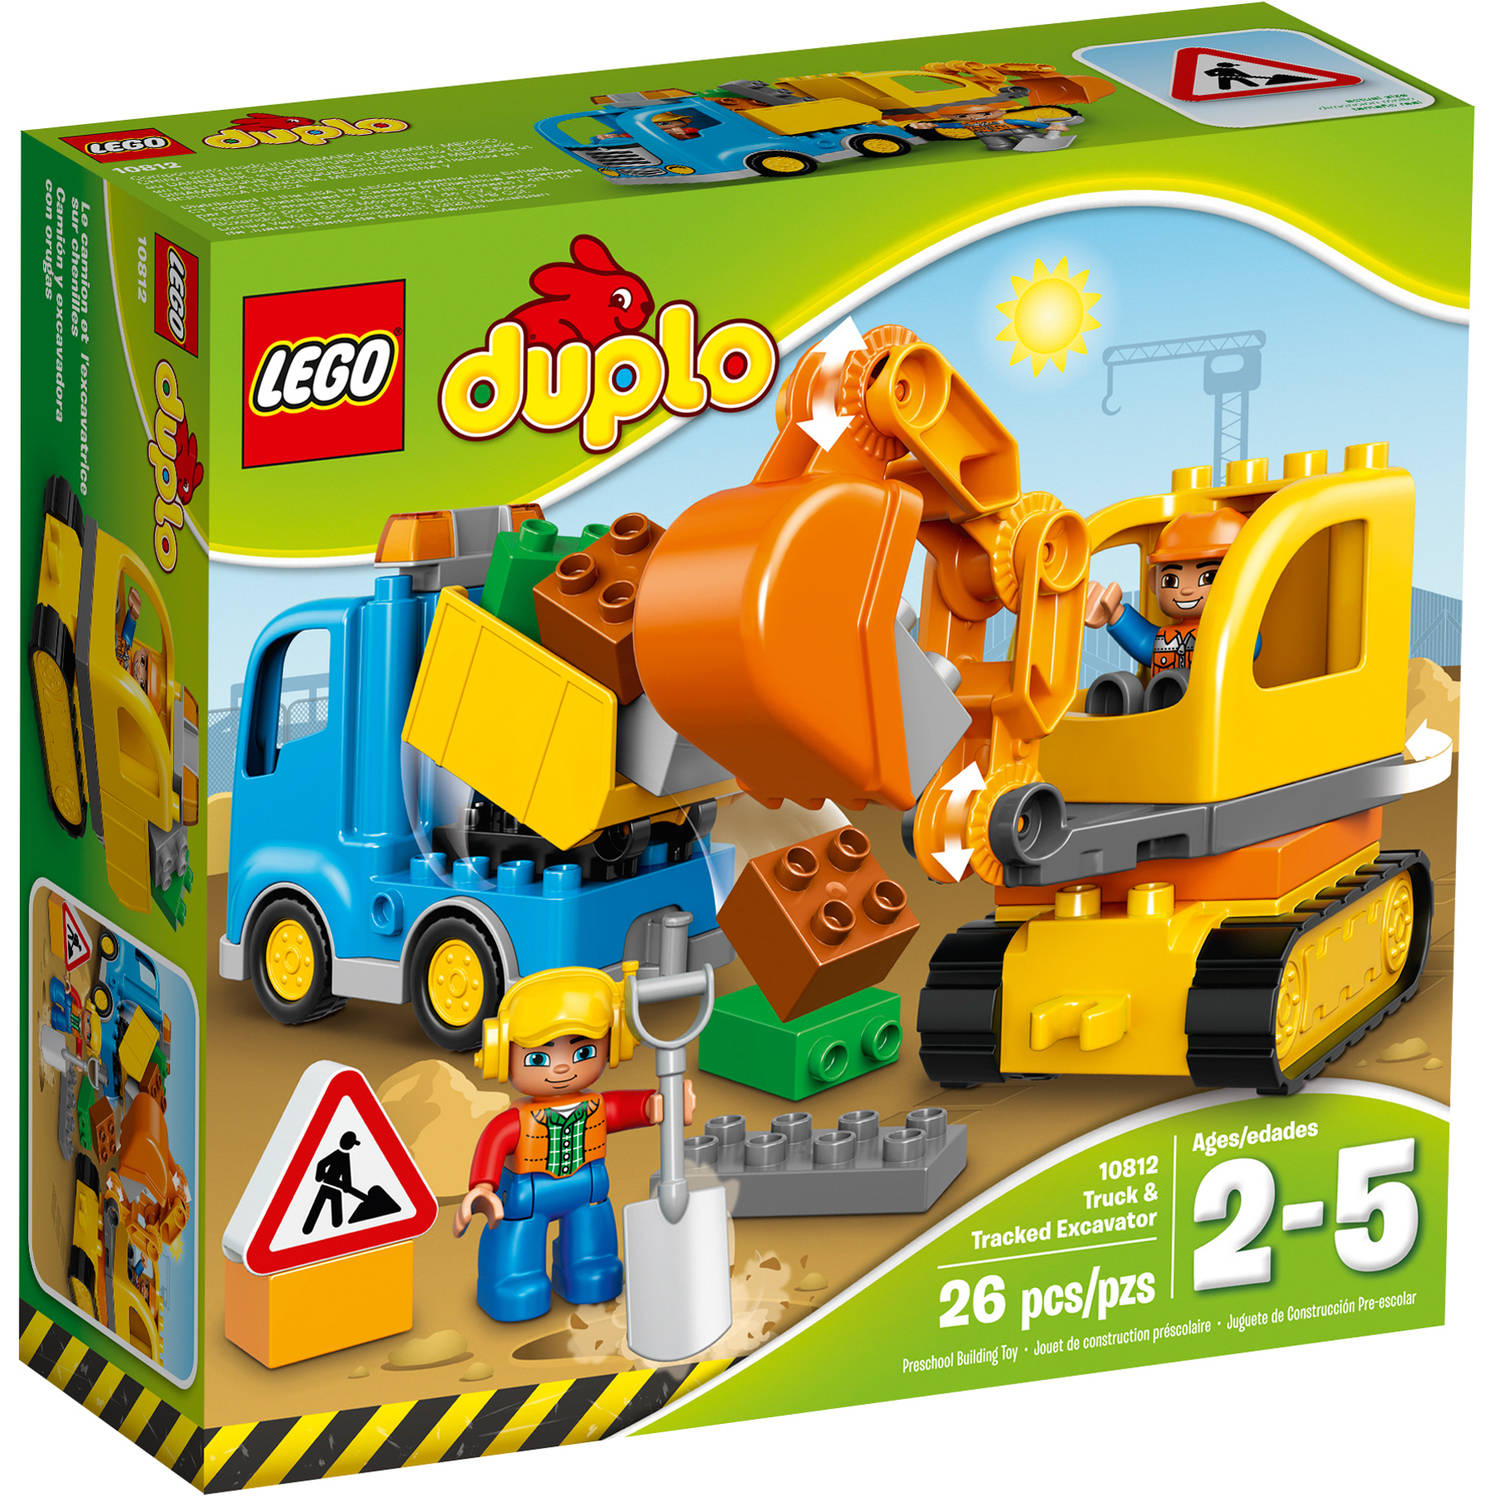 Lego DUPLO Truck & Tracked Excavator Building Set, 10812 by LEGO Systems, Inc.